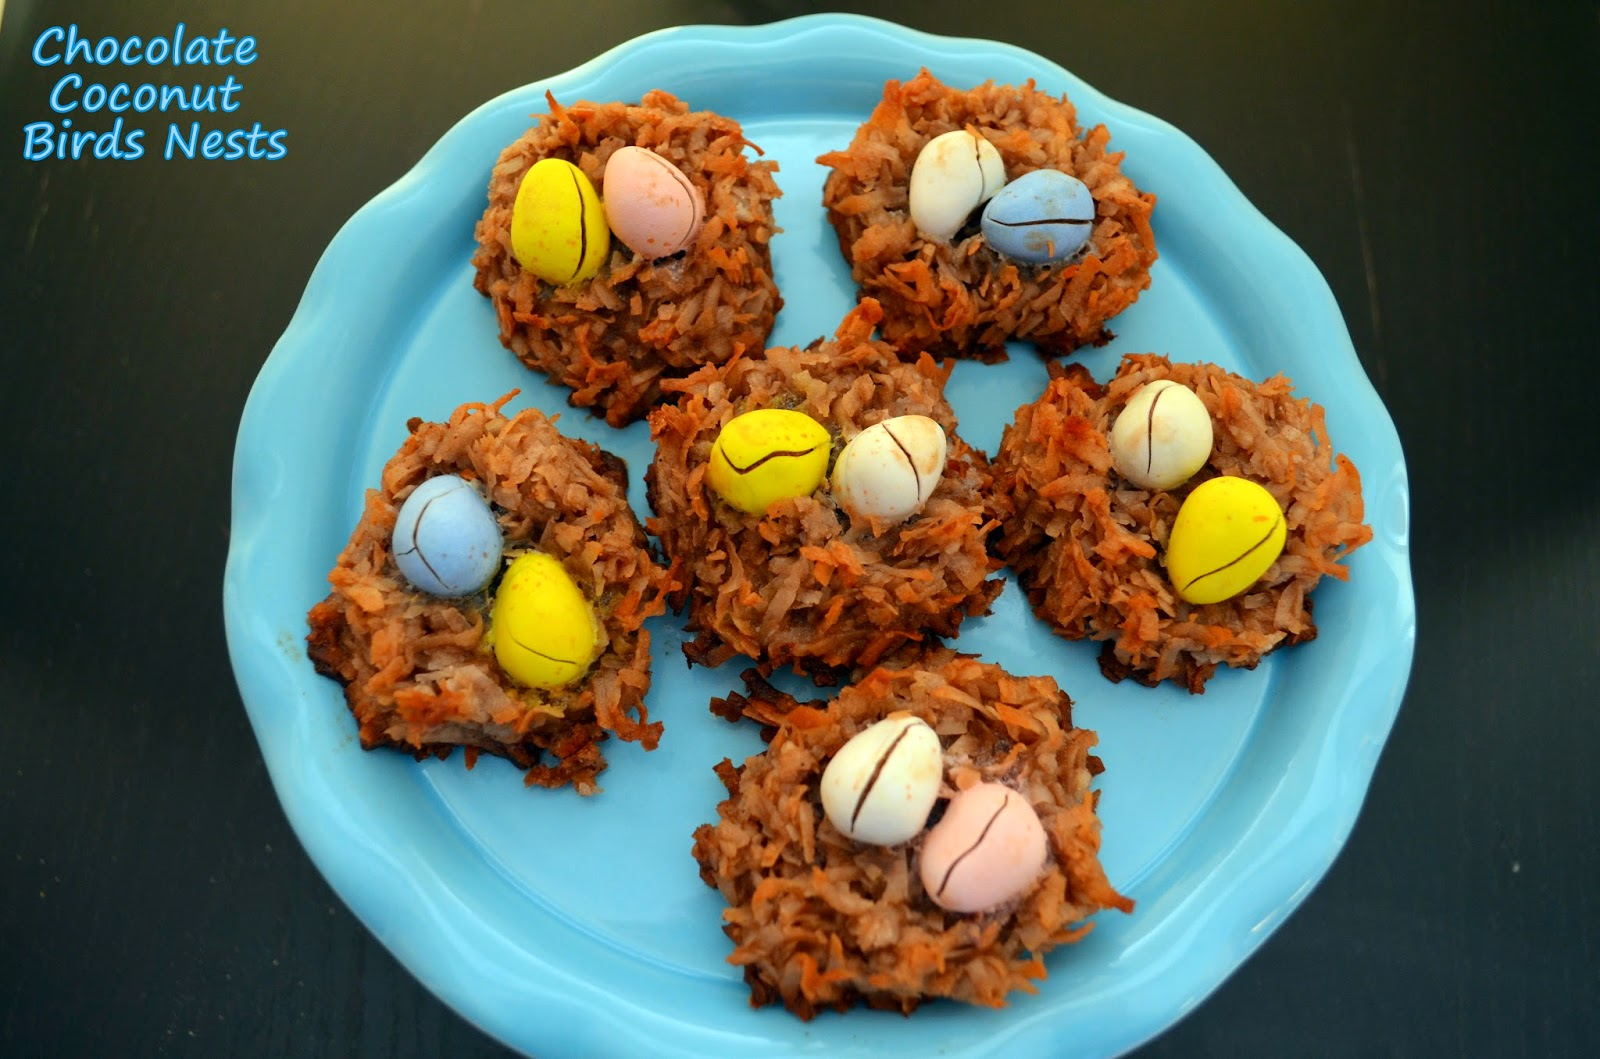 Flavors by Four: Chocolate Coconut Birds Nests